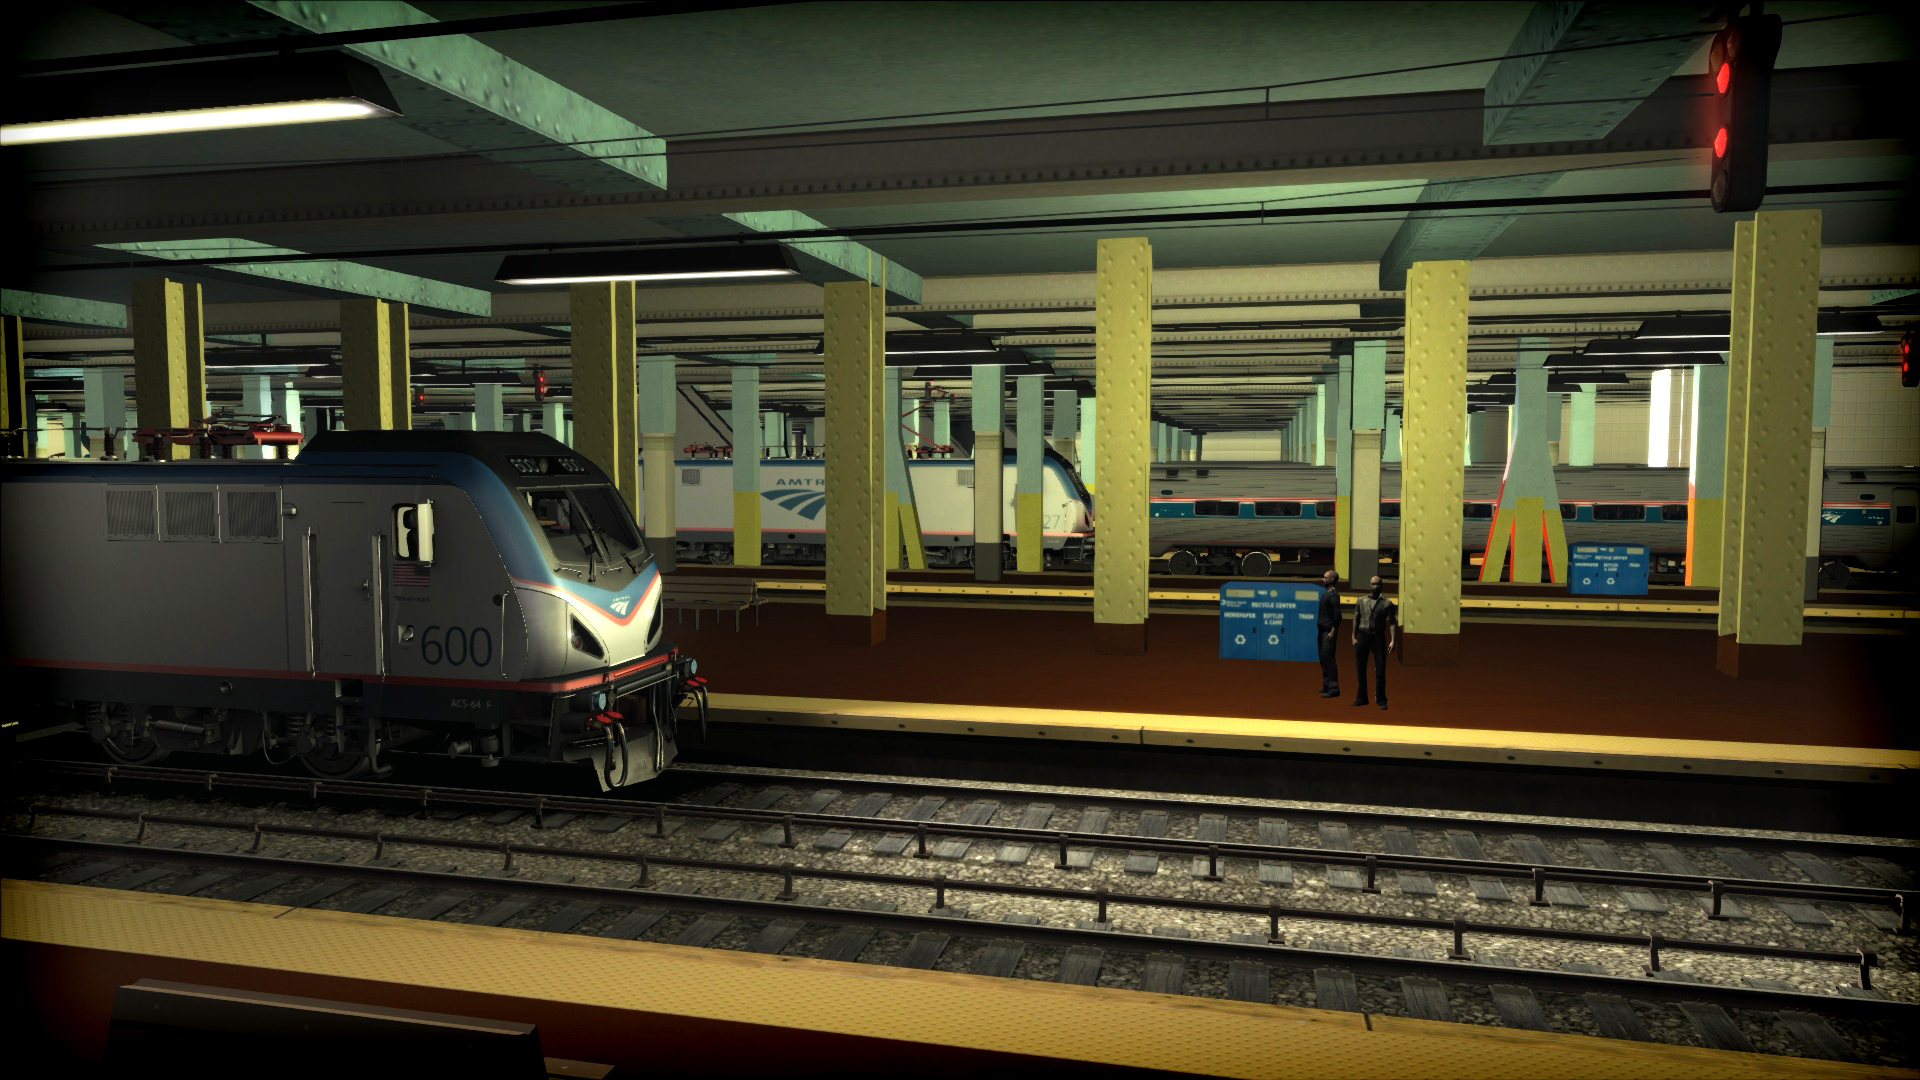 Msts Addon Routes And Train Station - banksfasr